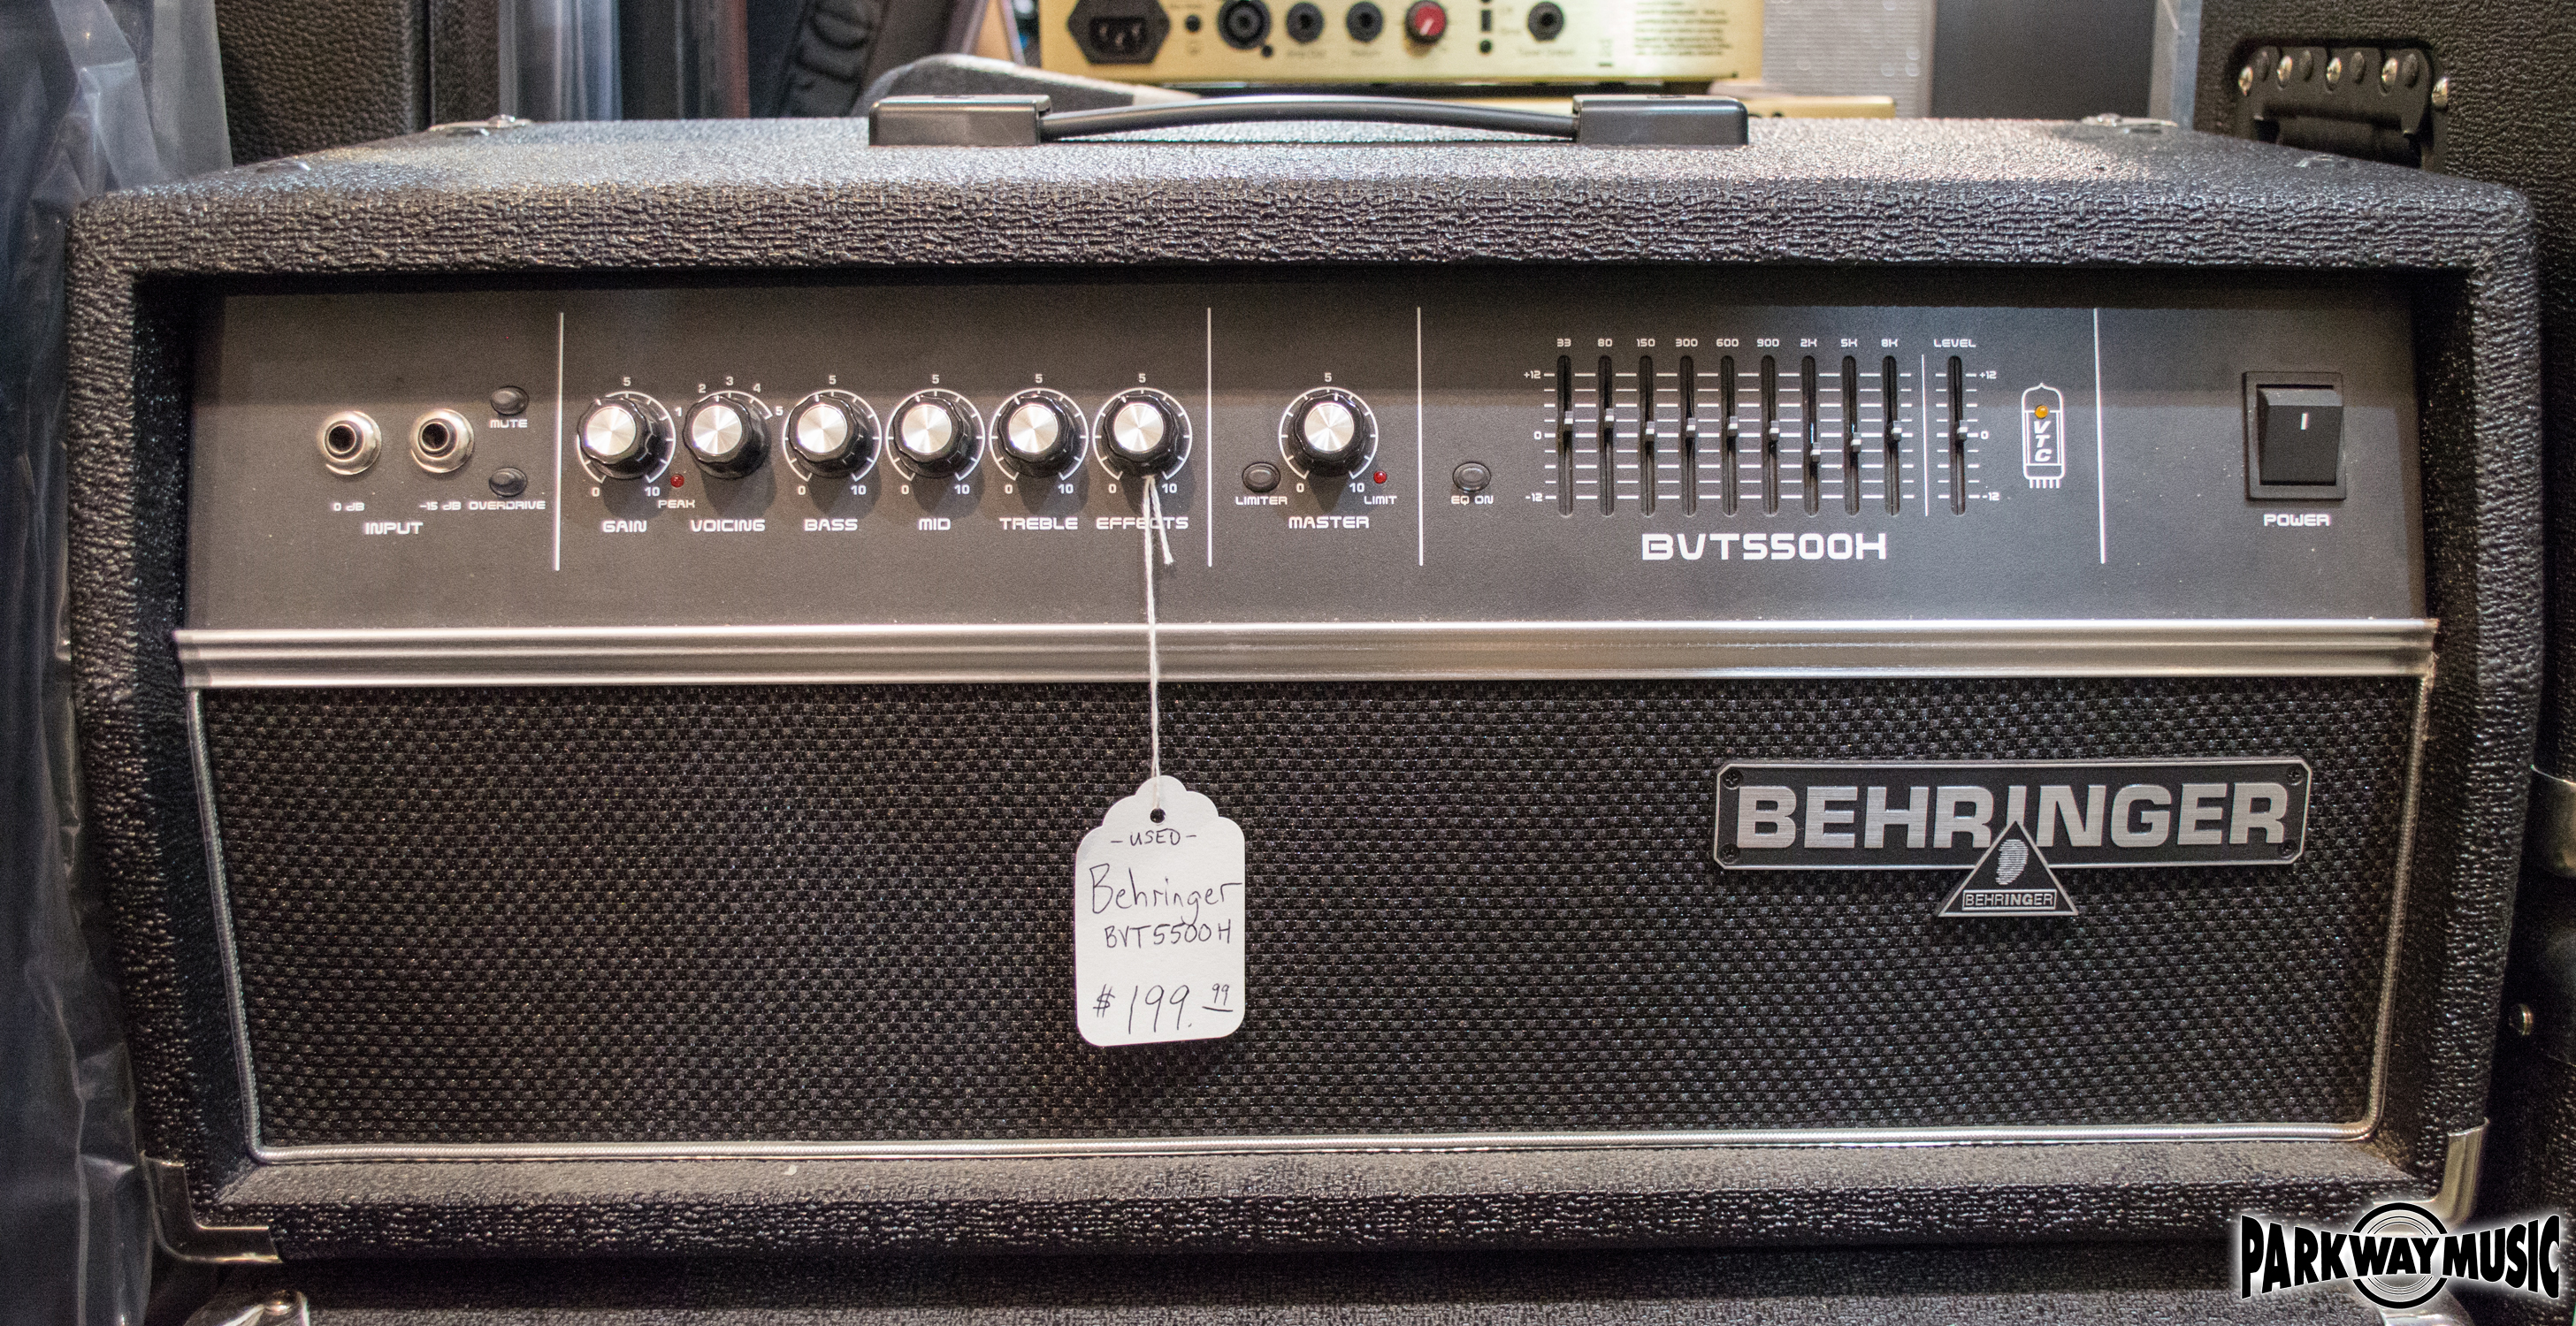 Behringer BVT 5500 Head (USED)